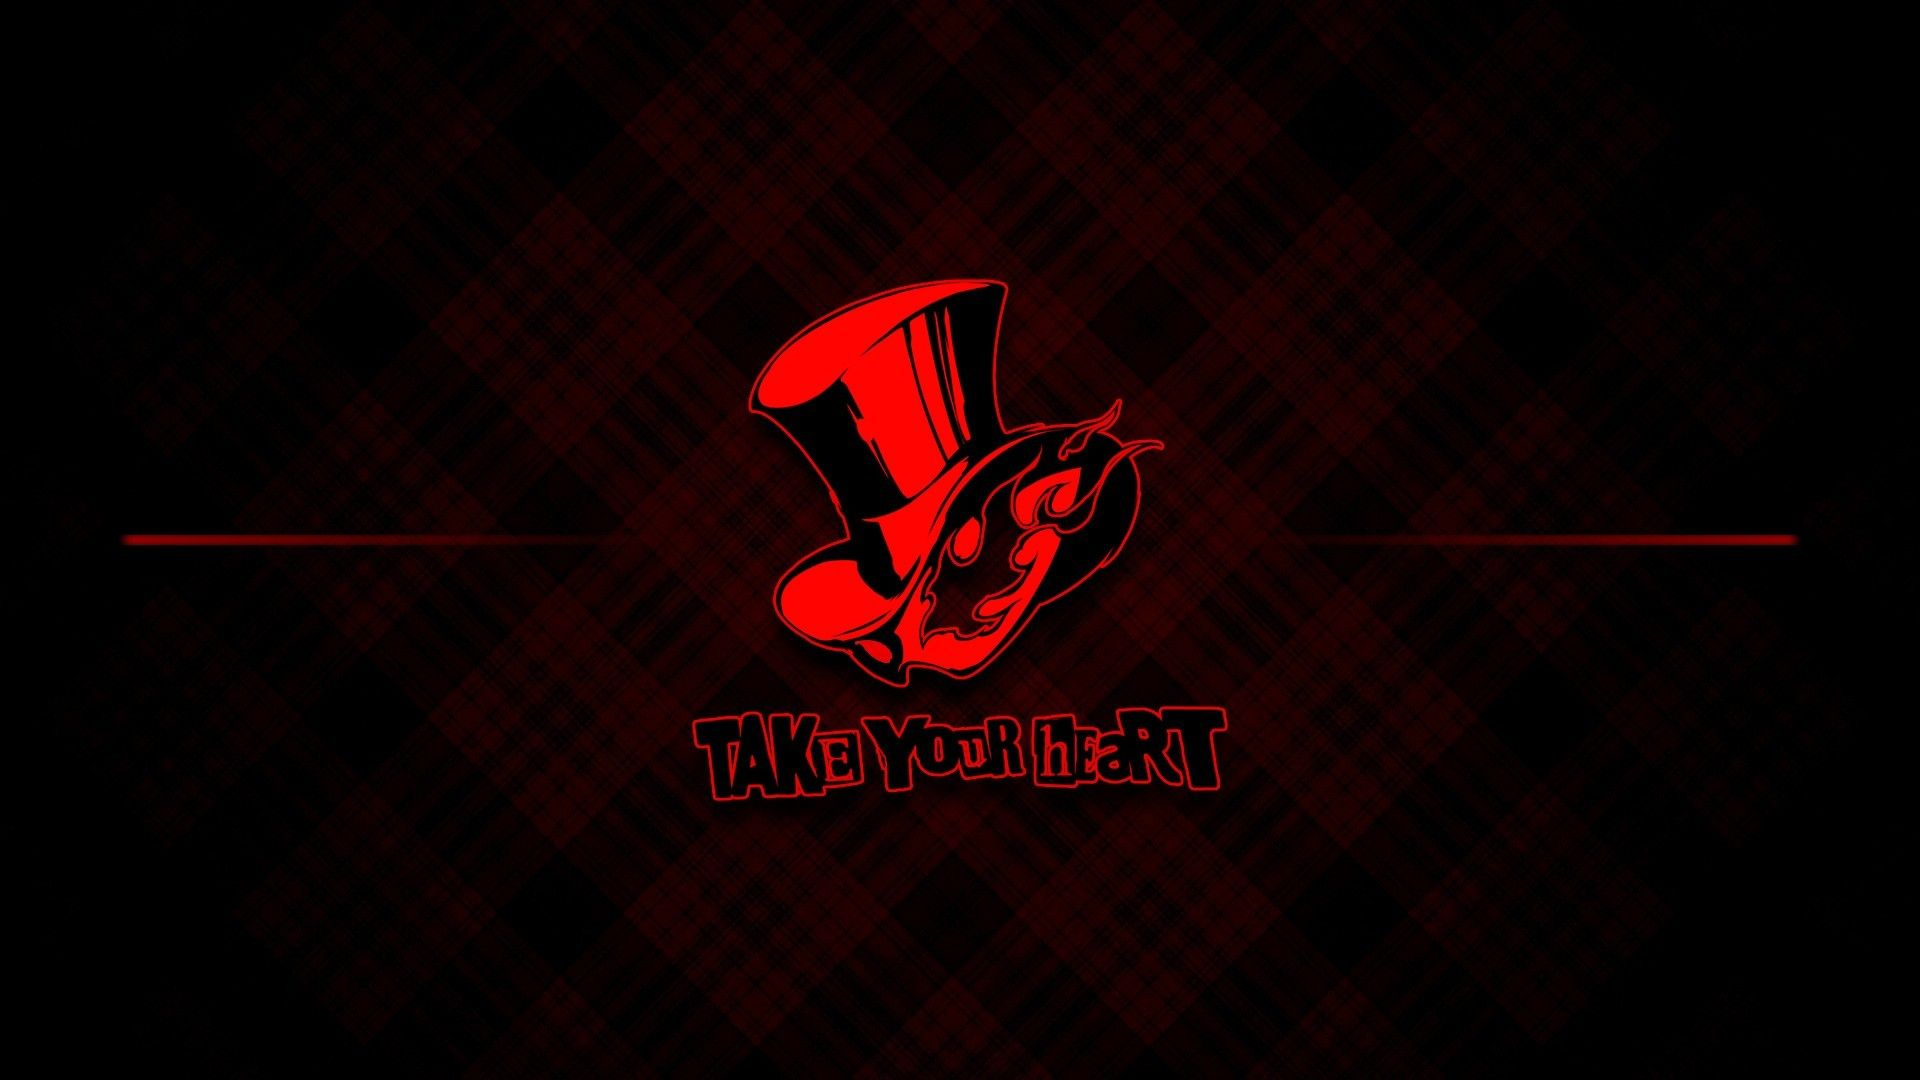 Res 1920x1080 Excellent Persona 5 Hd Hdq Cover Wallpapers